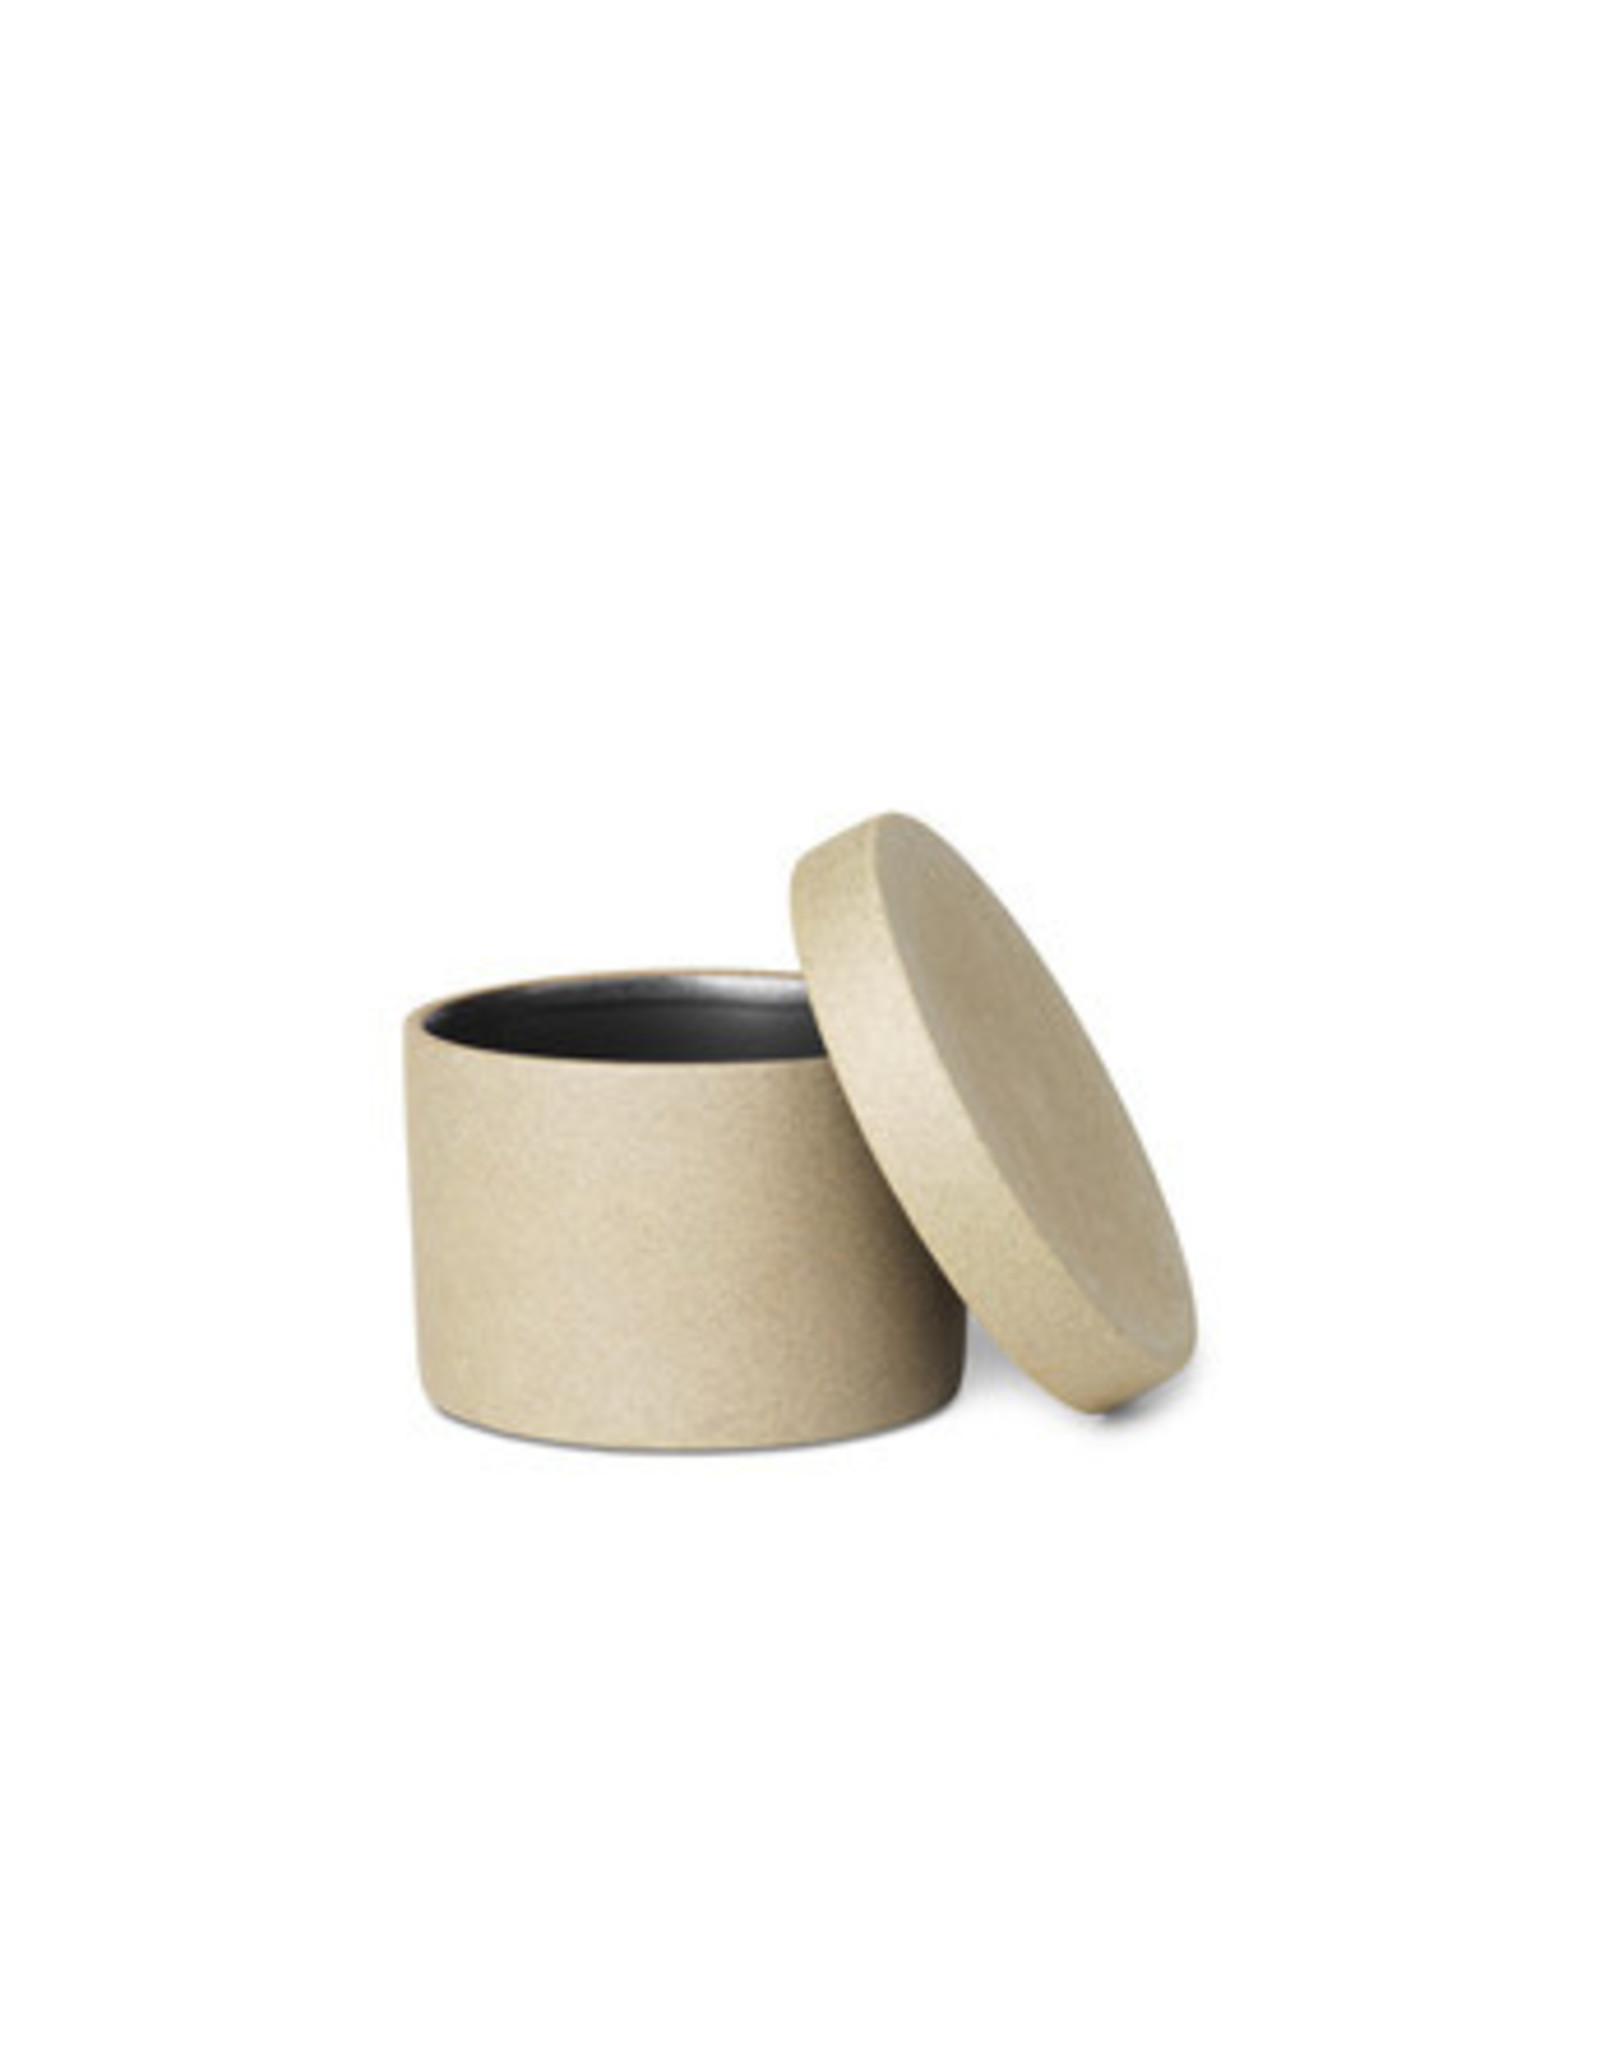 Ferm LIVING ferm LIVING Bon Accessories Small Container